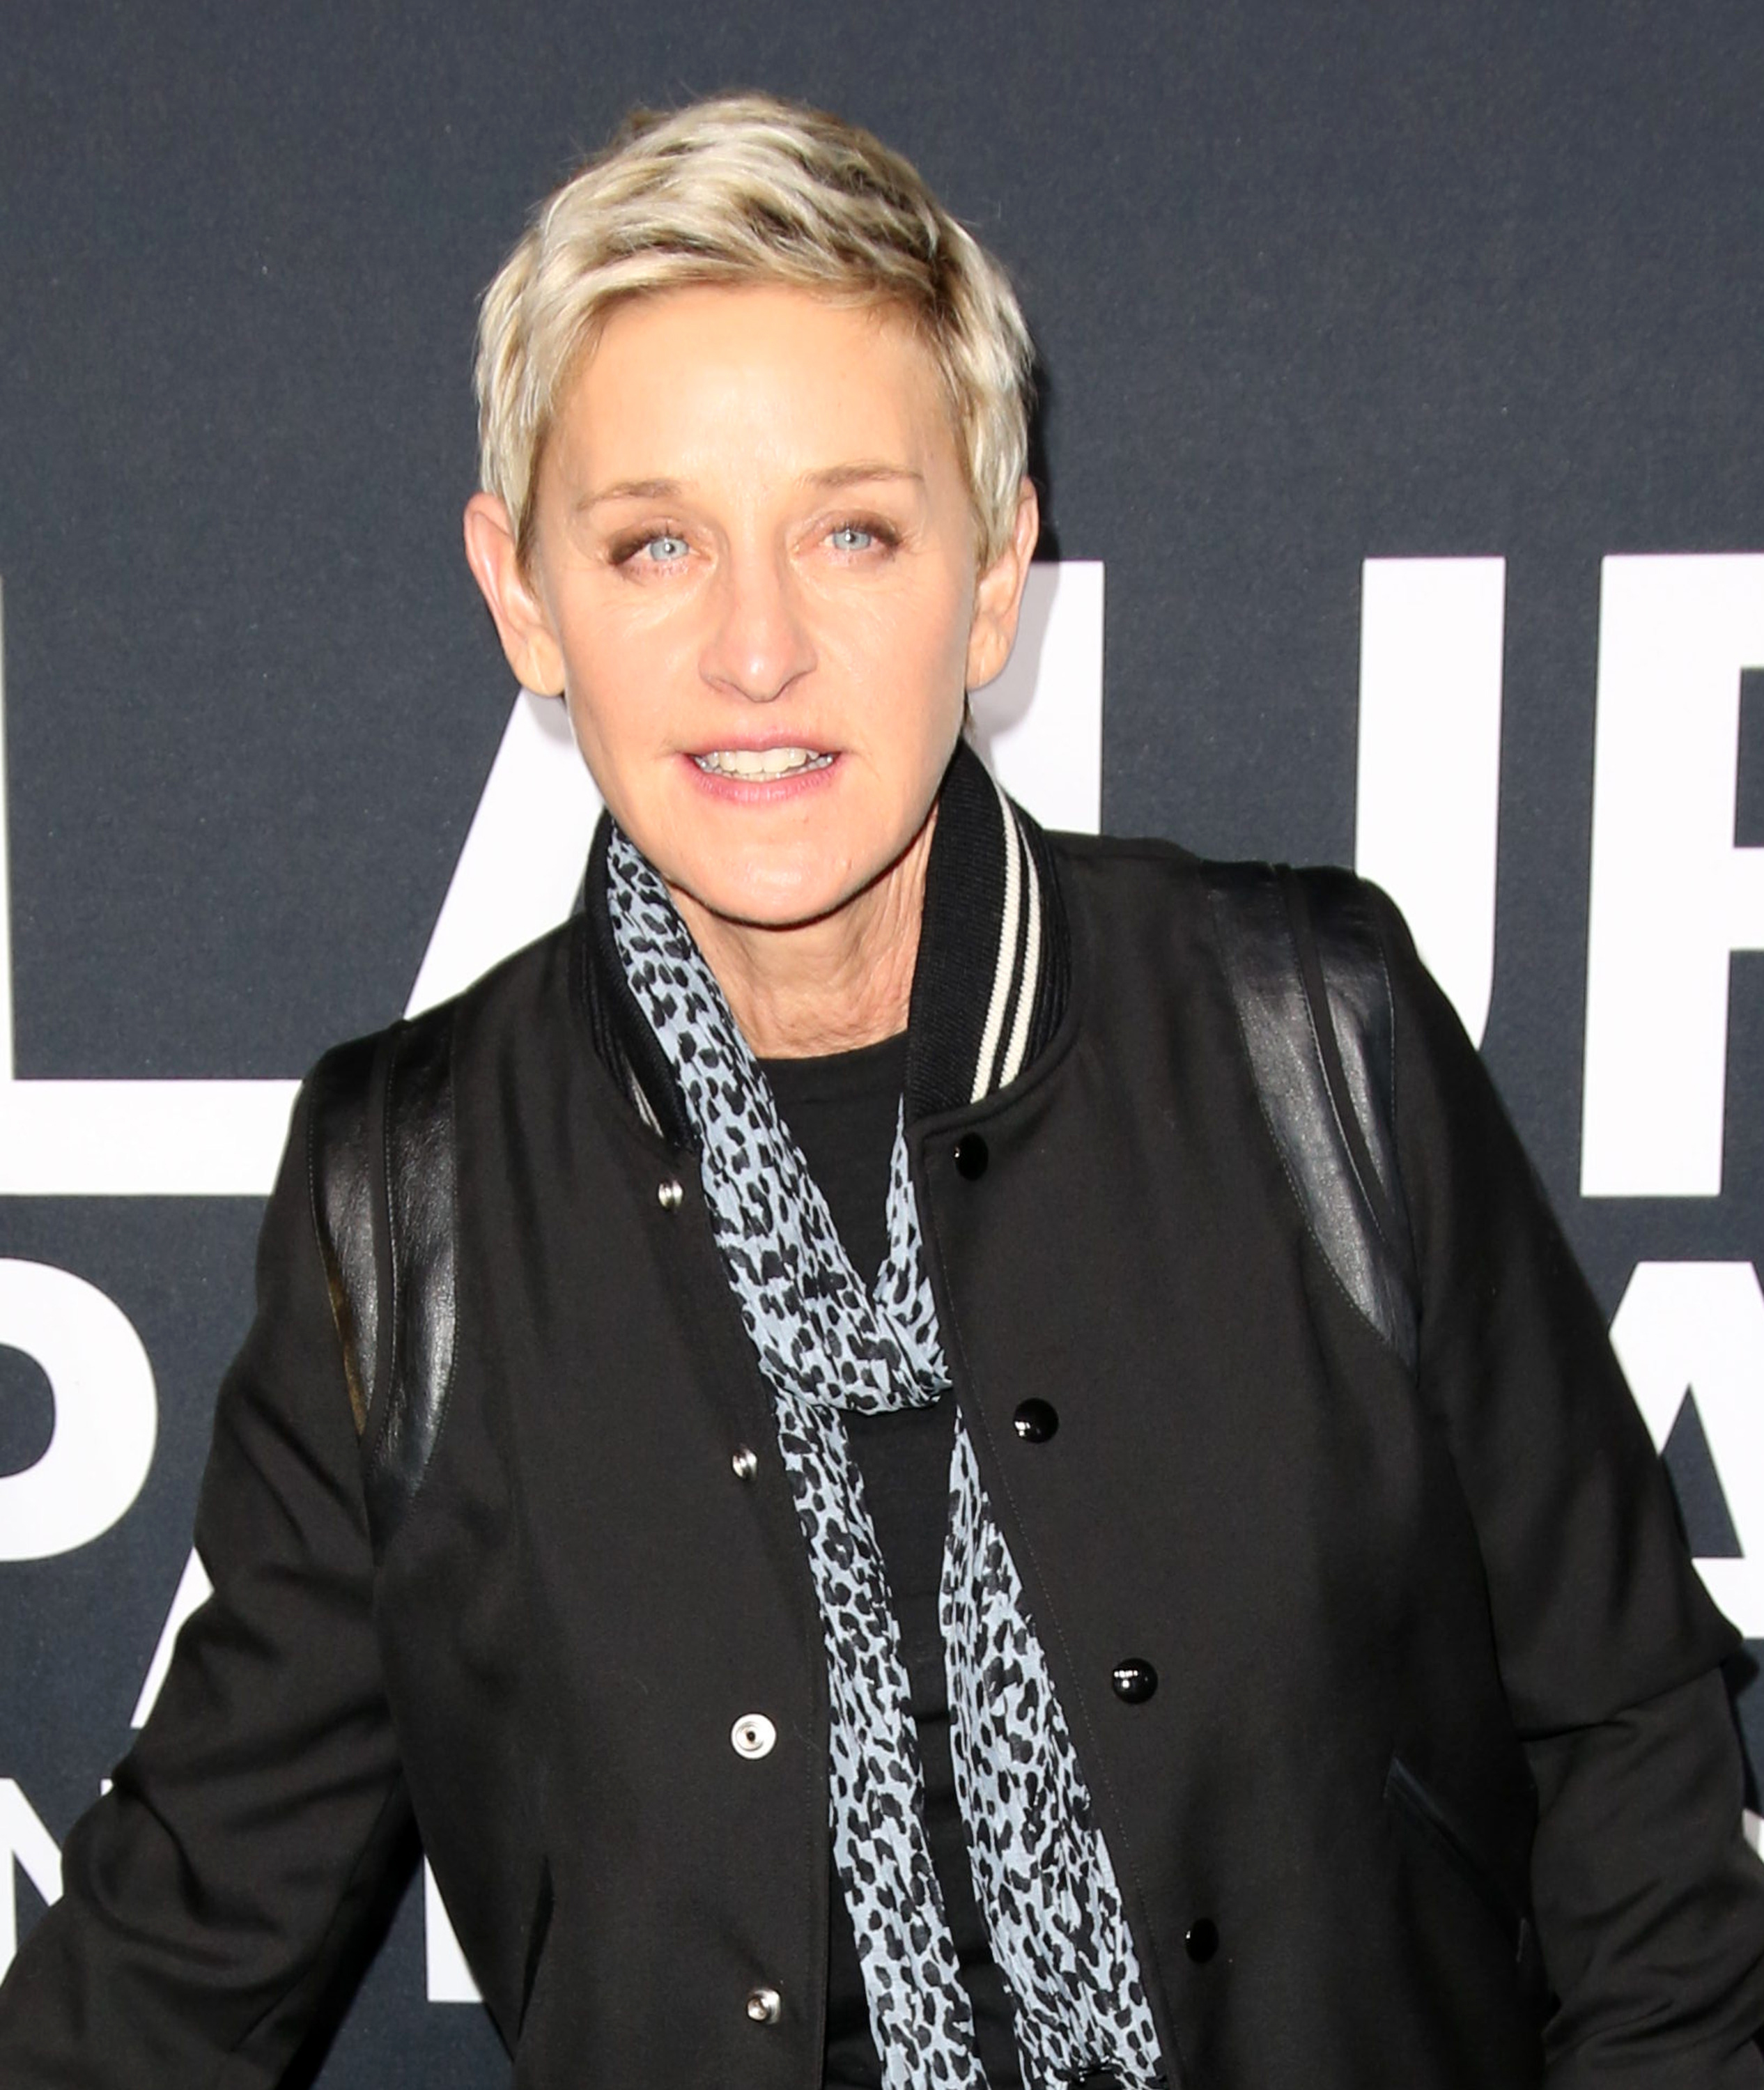 Saint Laurent at Hollywood Palladium - Arrivals                                    Featuring: Ellen DeGeneres                  Where: Los Angeles, California, United States                  When: 10 Feb 2016                  Credit: Brian To/WENN.com